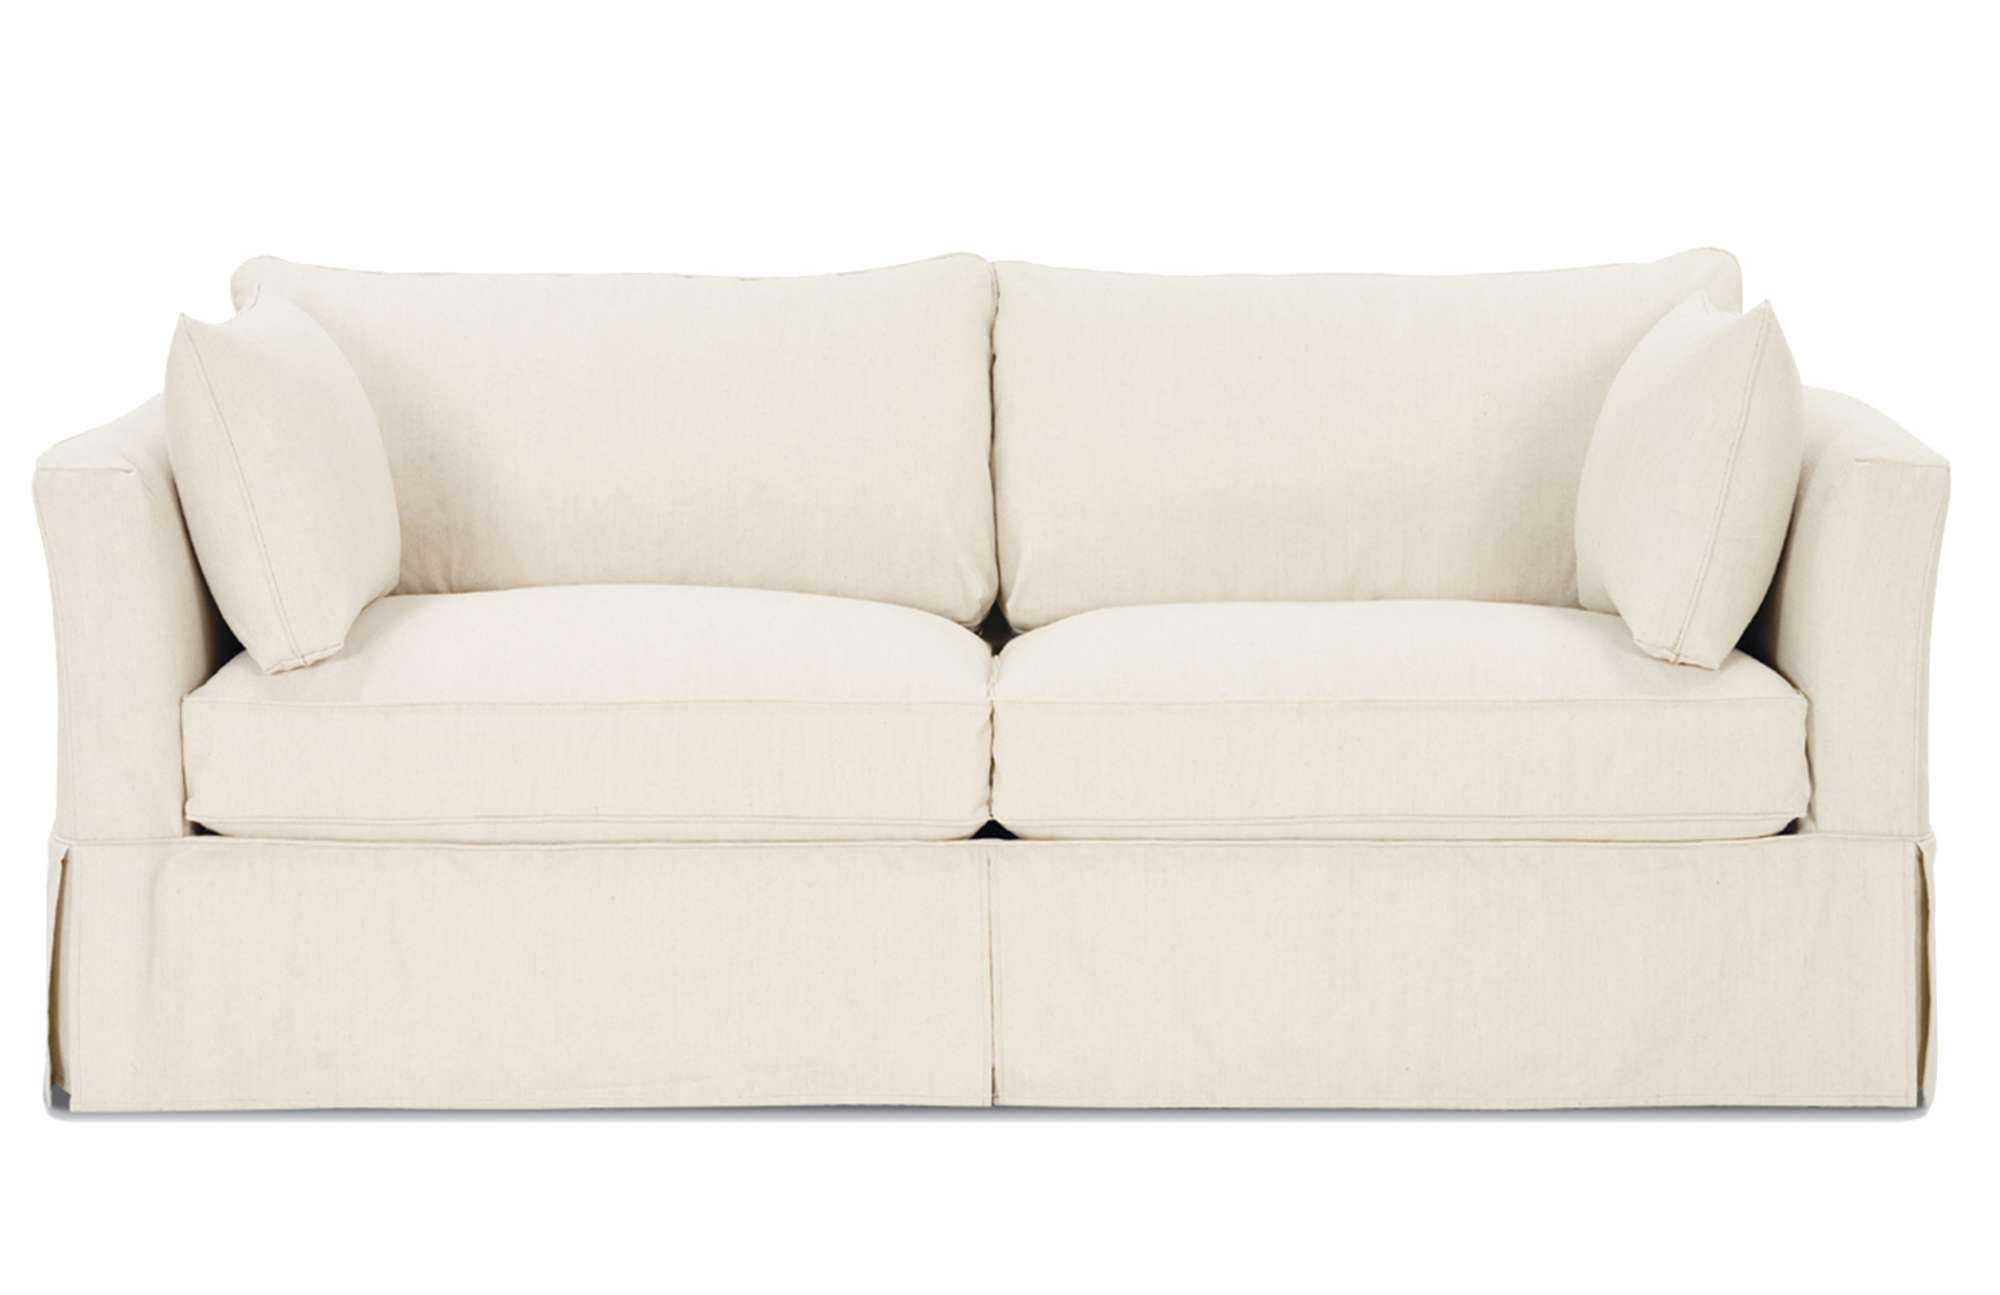 Slip Covered sofas Sensational New Slipcovered sofas for Your sofas and Couches Ideas with Collection